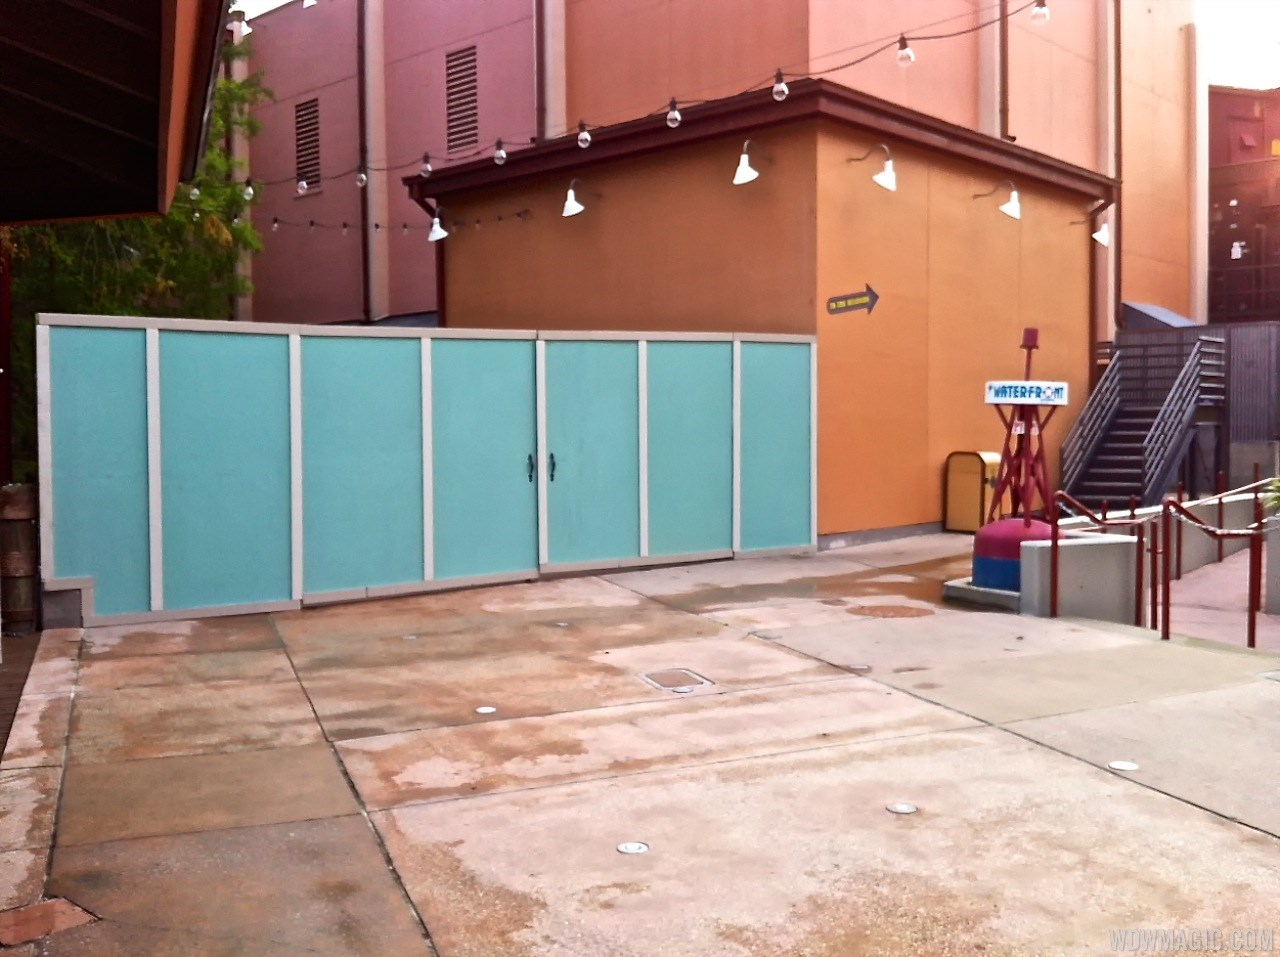 More Disney Springs construction walls